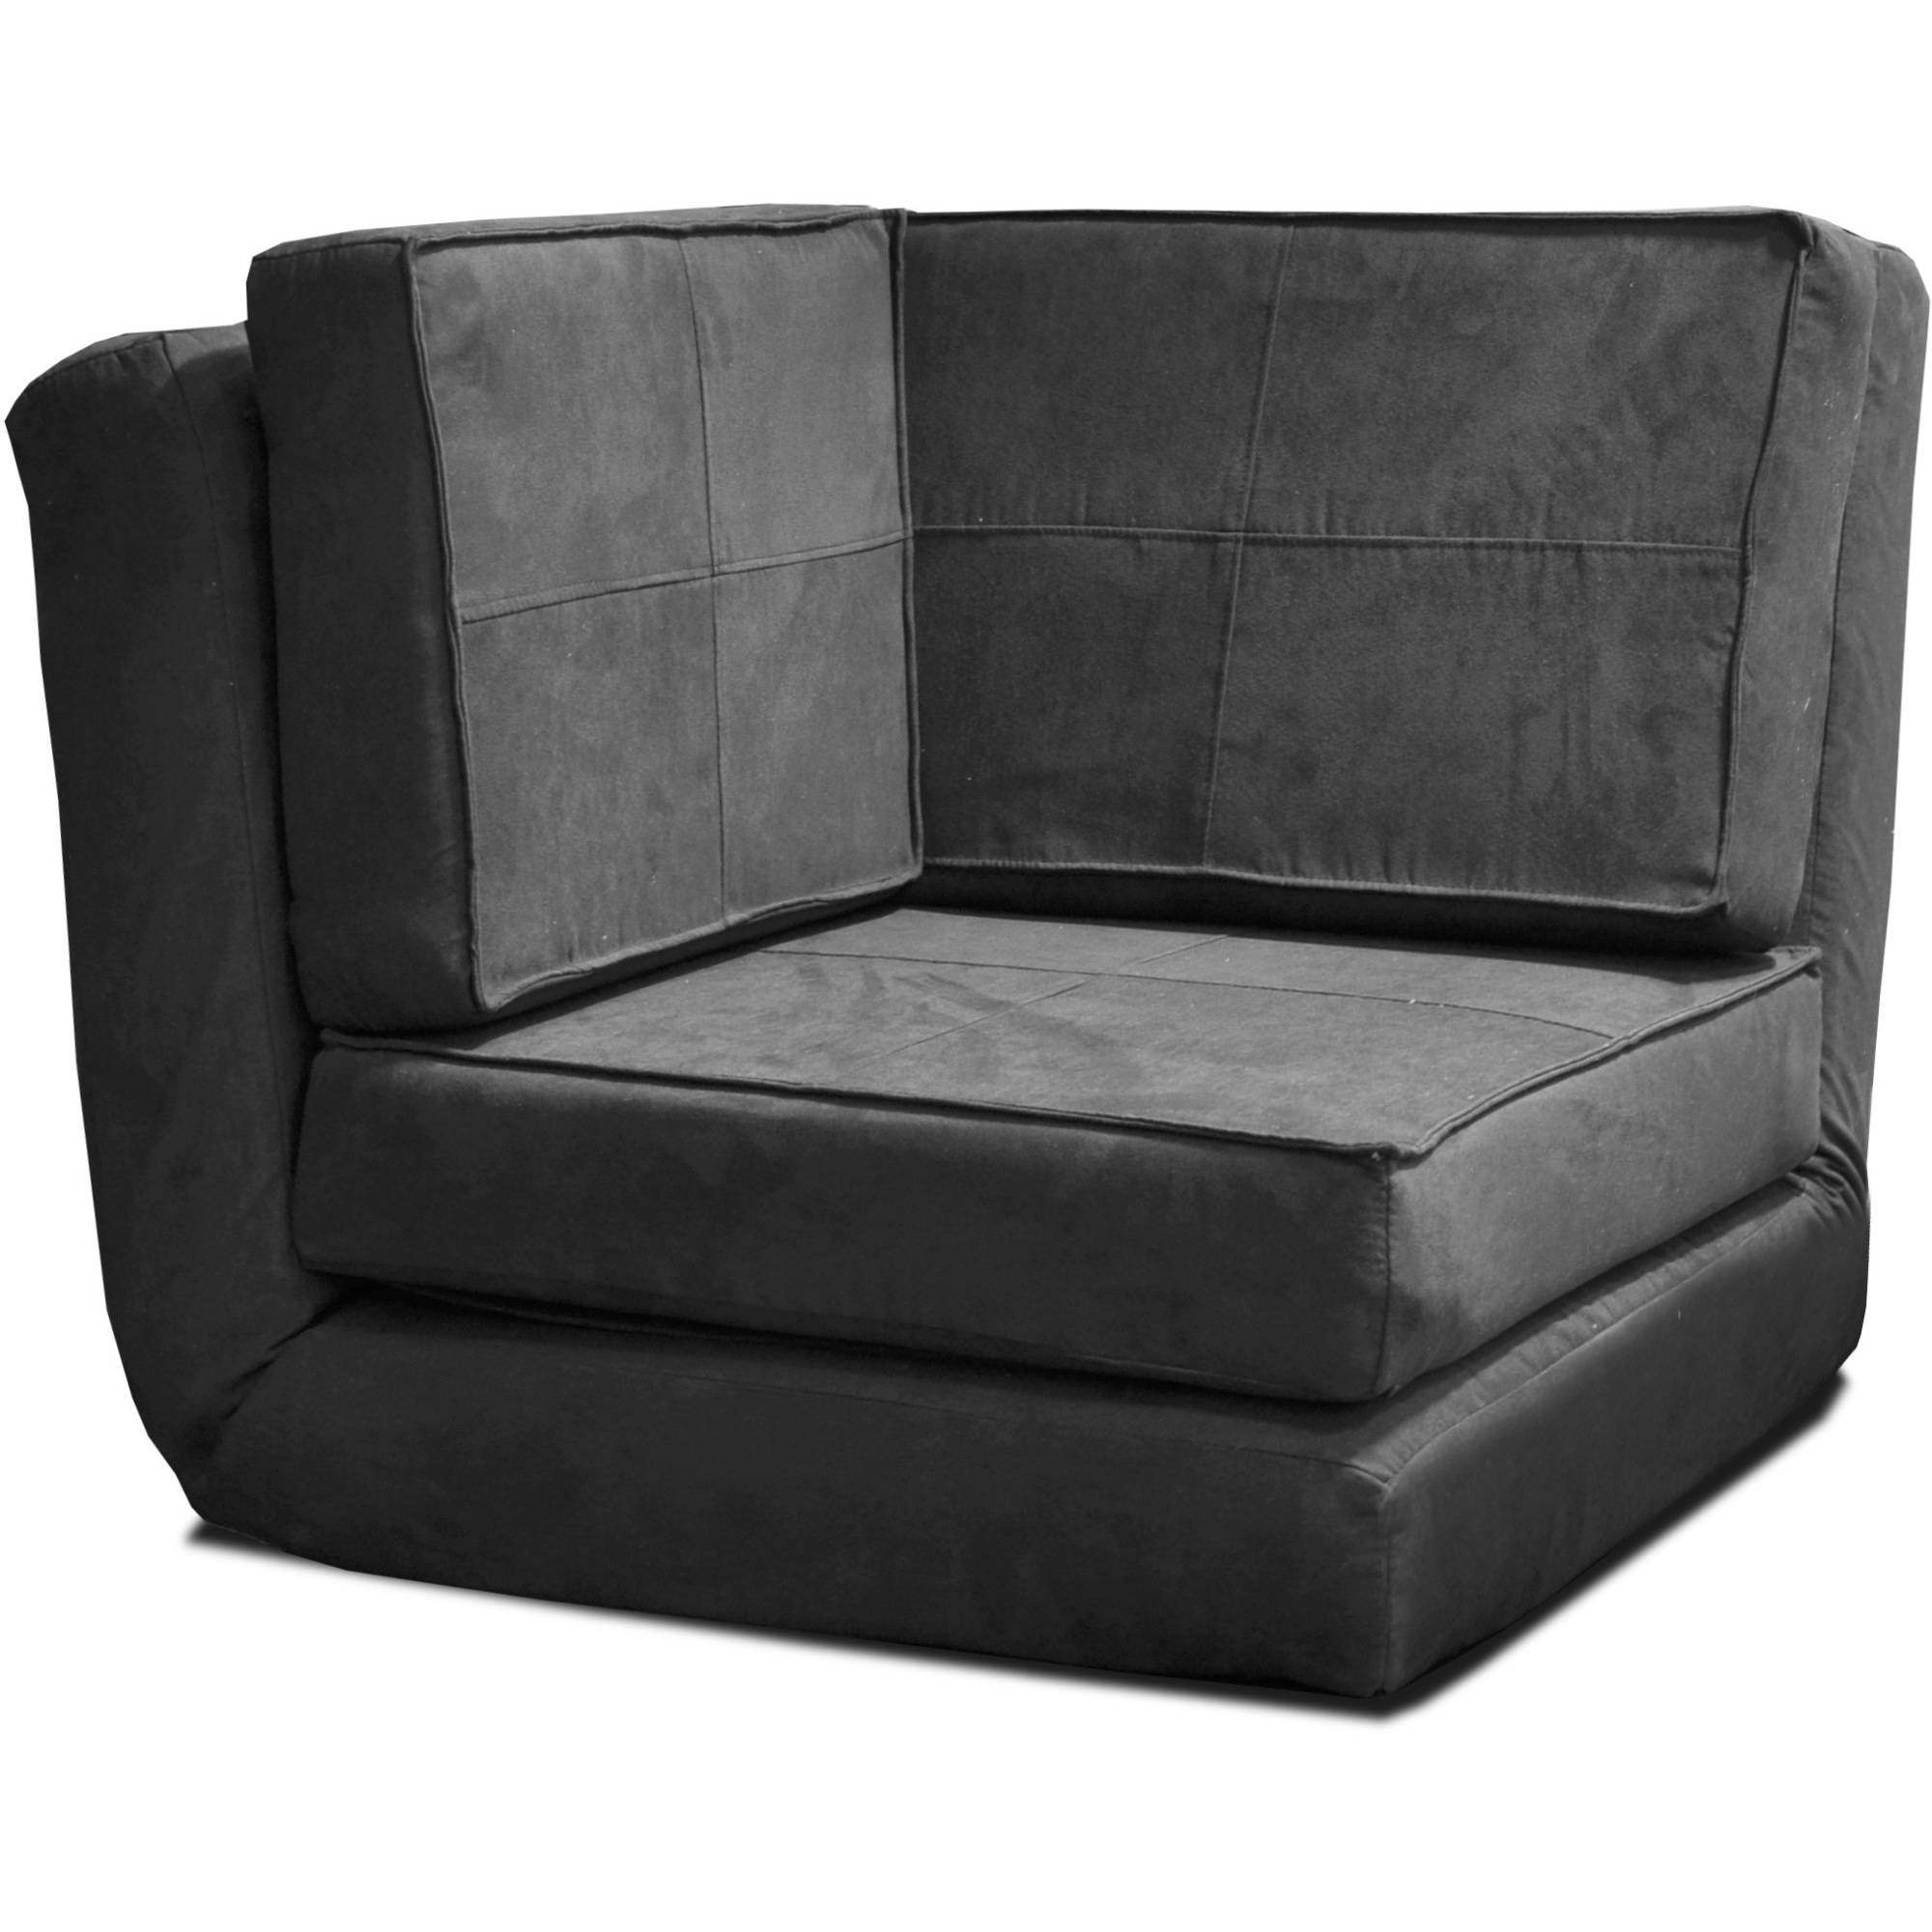 hanging zone chair modern faux leather club flip corner sleeper lounge loveseat black xmas new